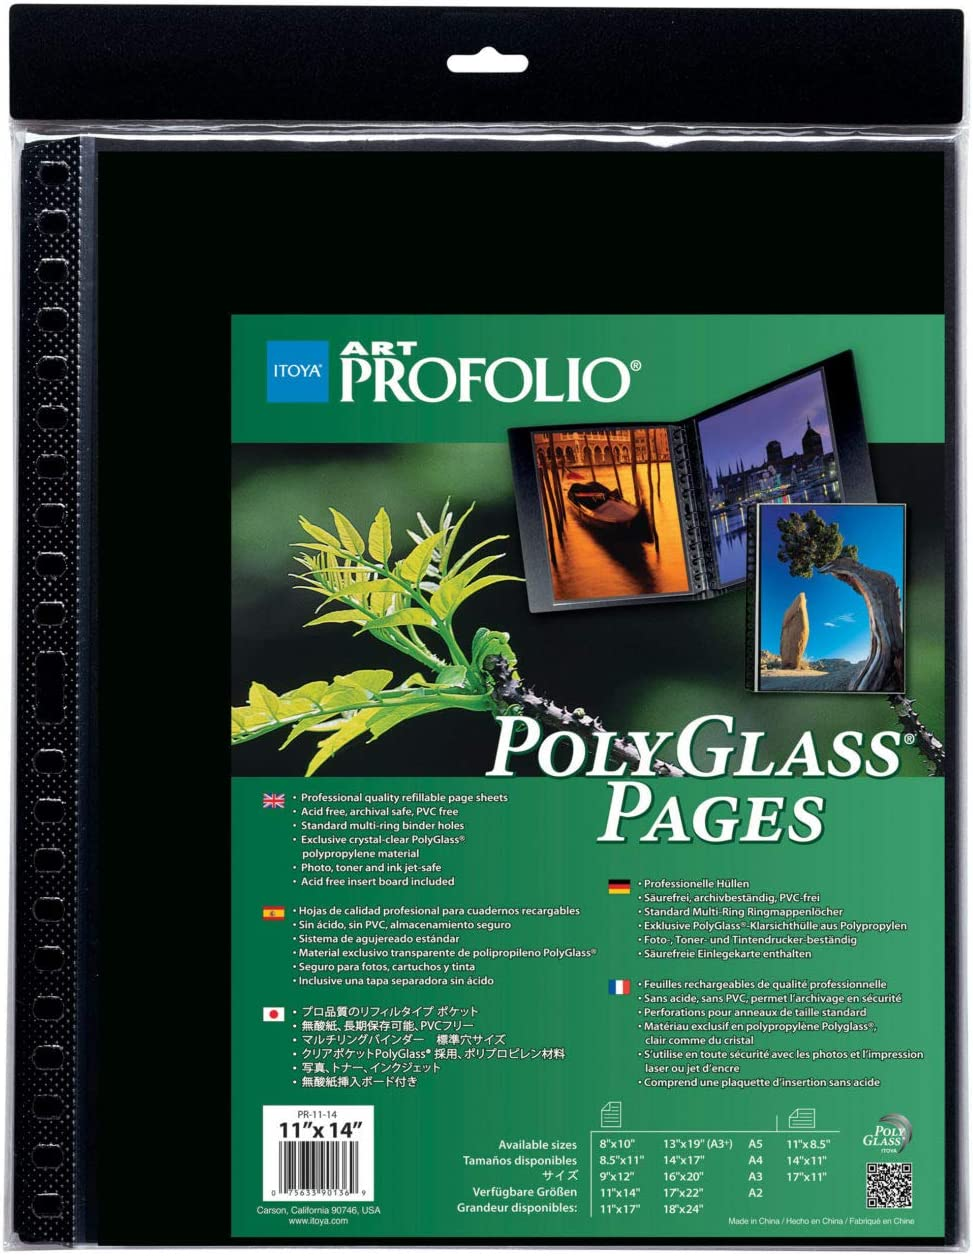 10-Pack Multi-Ring Binder Refill Pages Portrait ProFolio by Itoya 13 x 19 Inches Art ProFolio PolyGlass